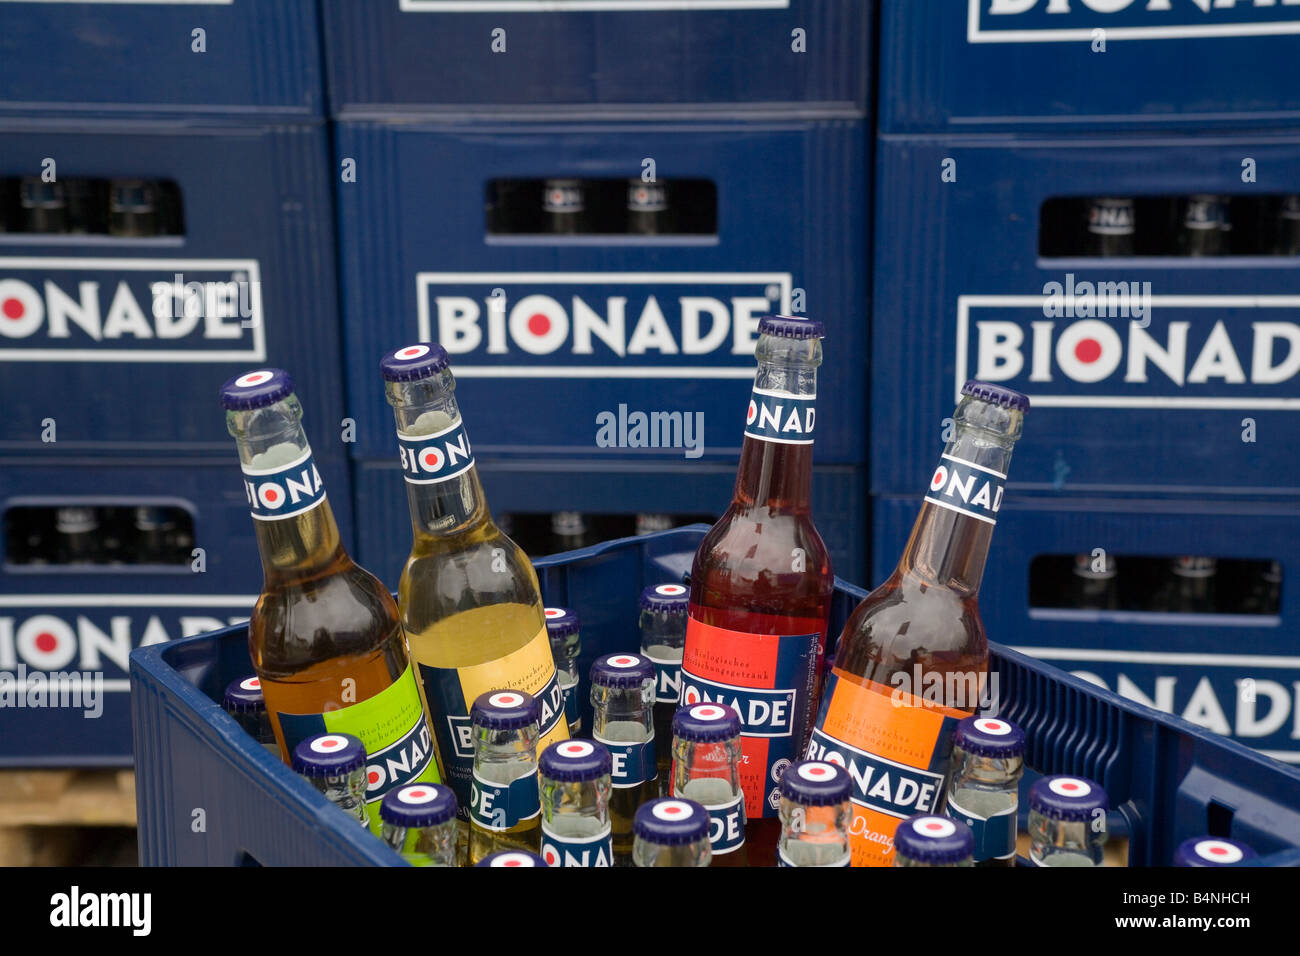 BIONADE GmbH production of the biological alcohol free soft drink Bionade - Stock Image